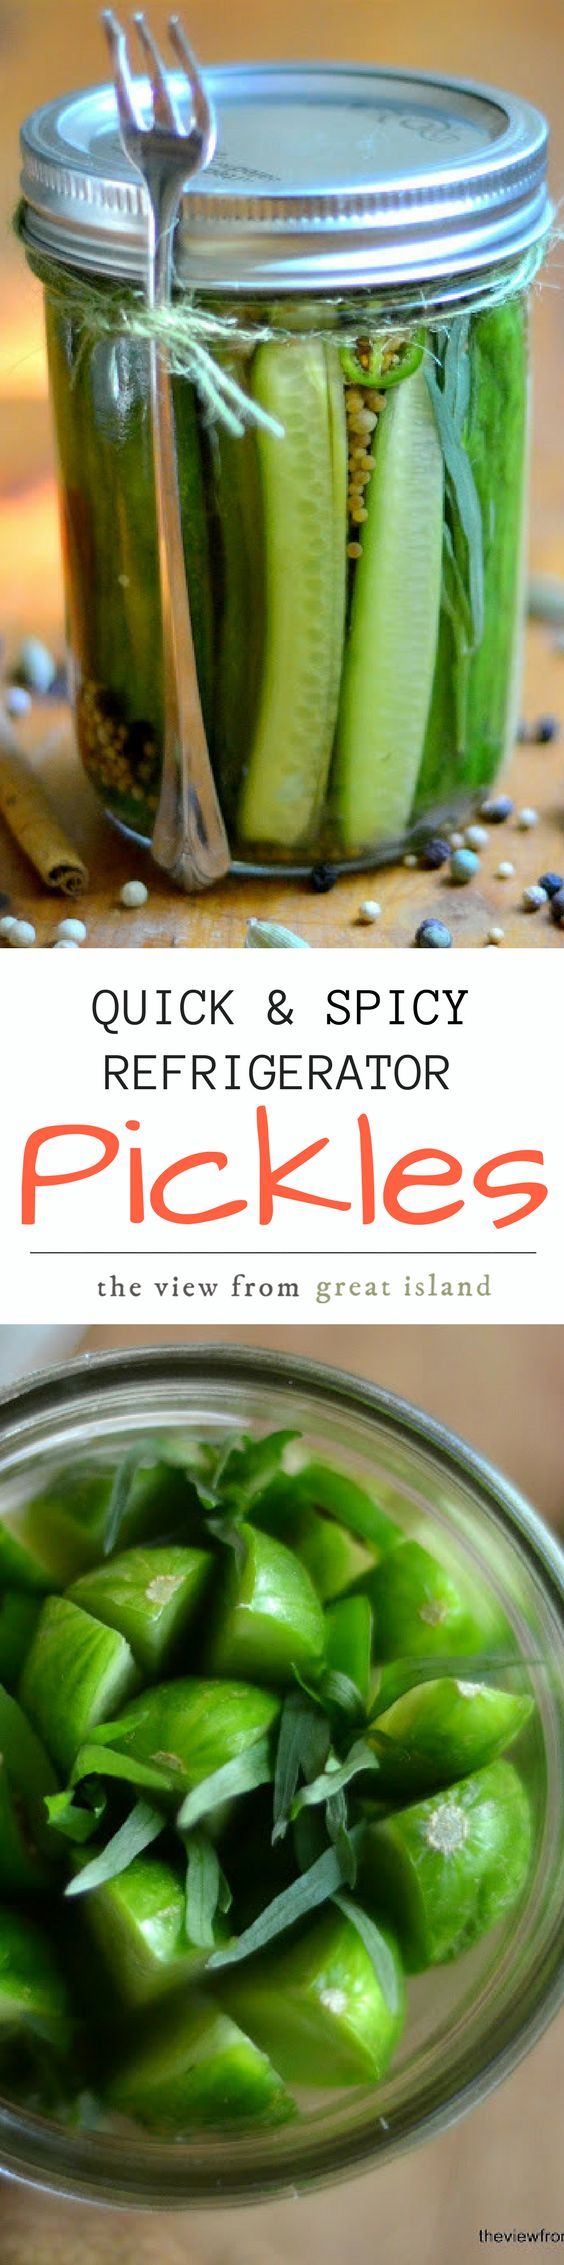 My Quick and Spicy Refrigerator Pickles are ready in under an hour! These spicy dill pickles are super crunchy and so easy to make! | pickling | preserves | cucumbers | canning | Quickles |